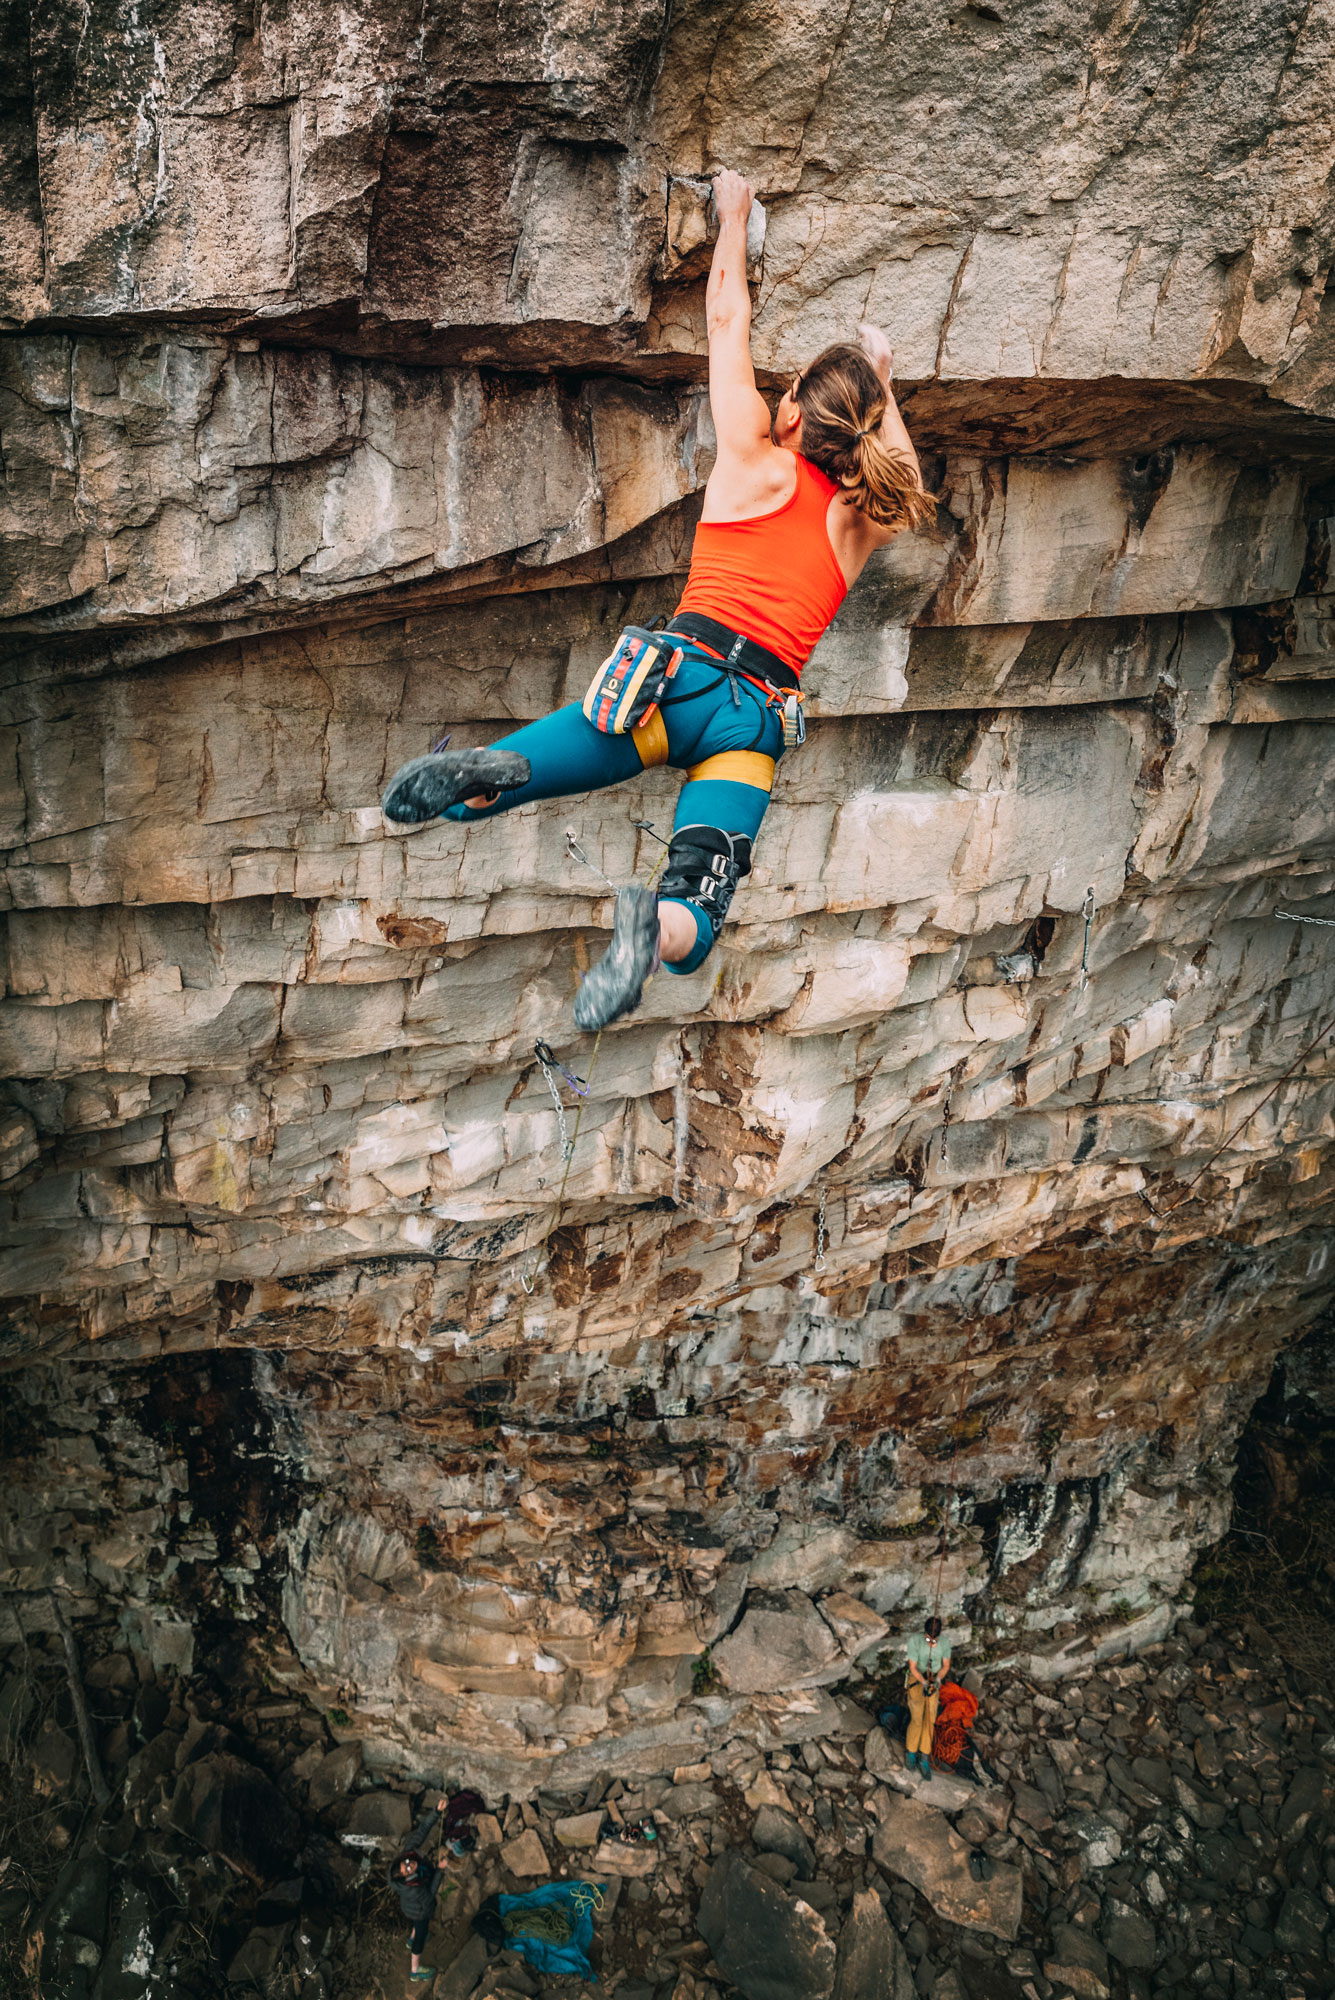 Laurel Graefe sticking the big move on  Rockstar  (5.13b) at Shaman Cave. Photo courtesy of  Nathalie DuPre .